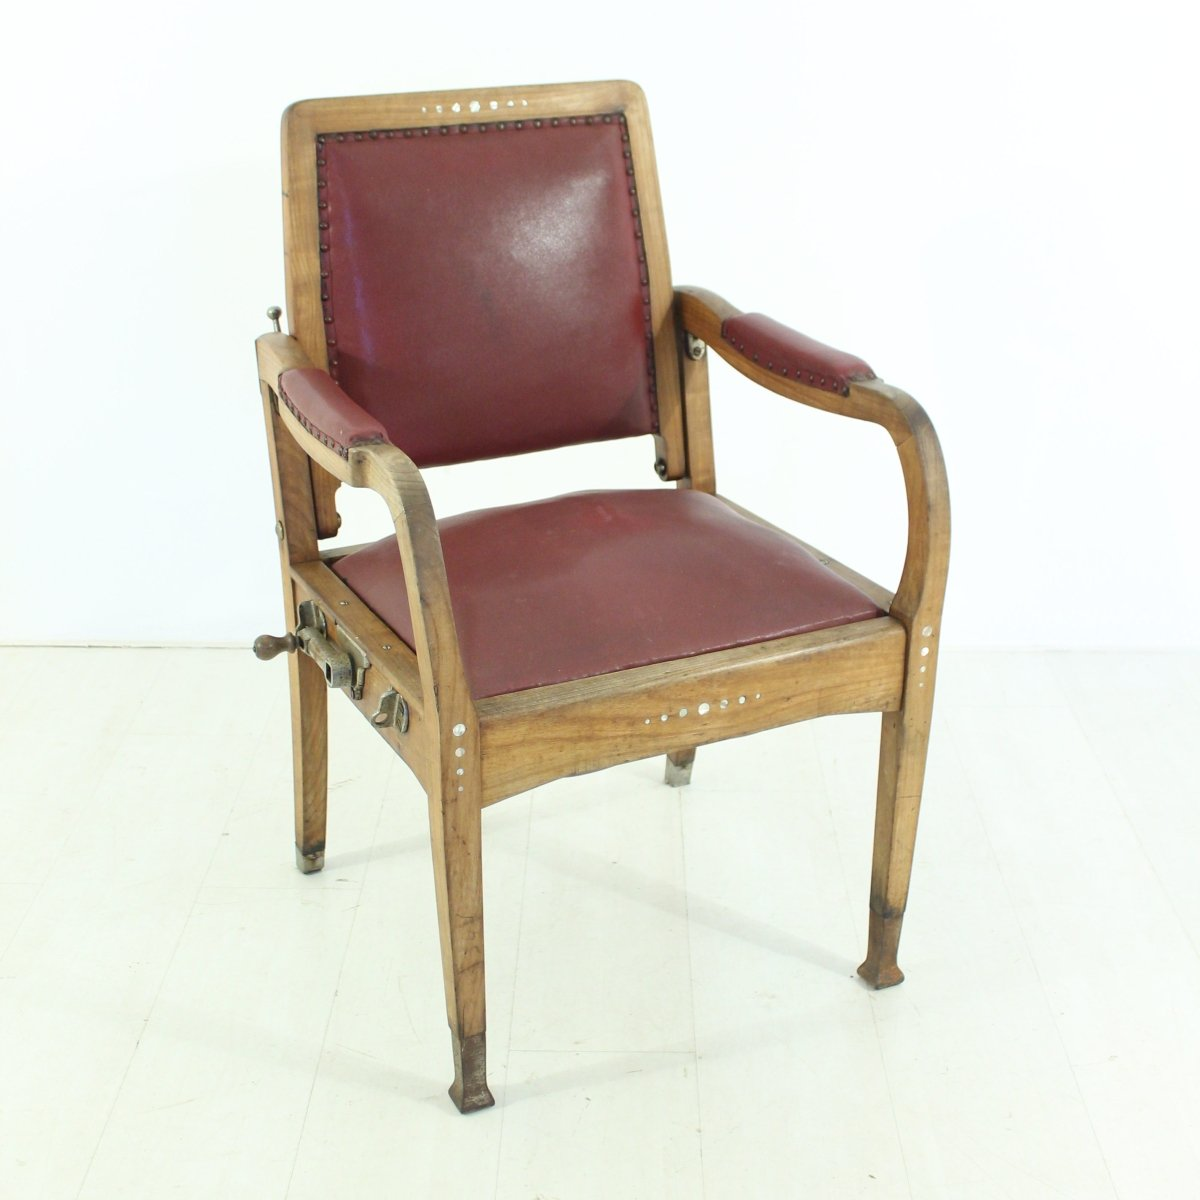 Hairdresser 39 s chair 1920s for sale at pamono for Hairdressing chairs